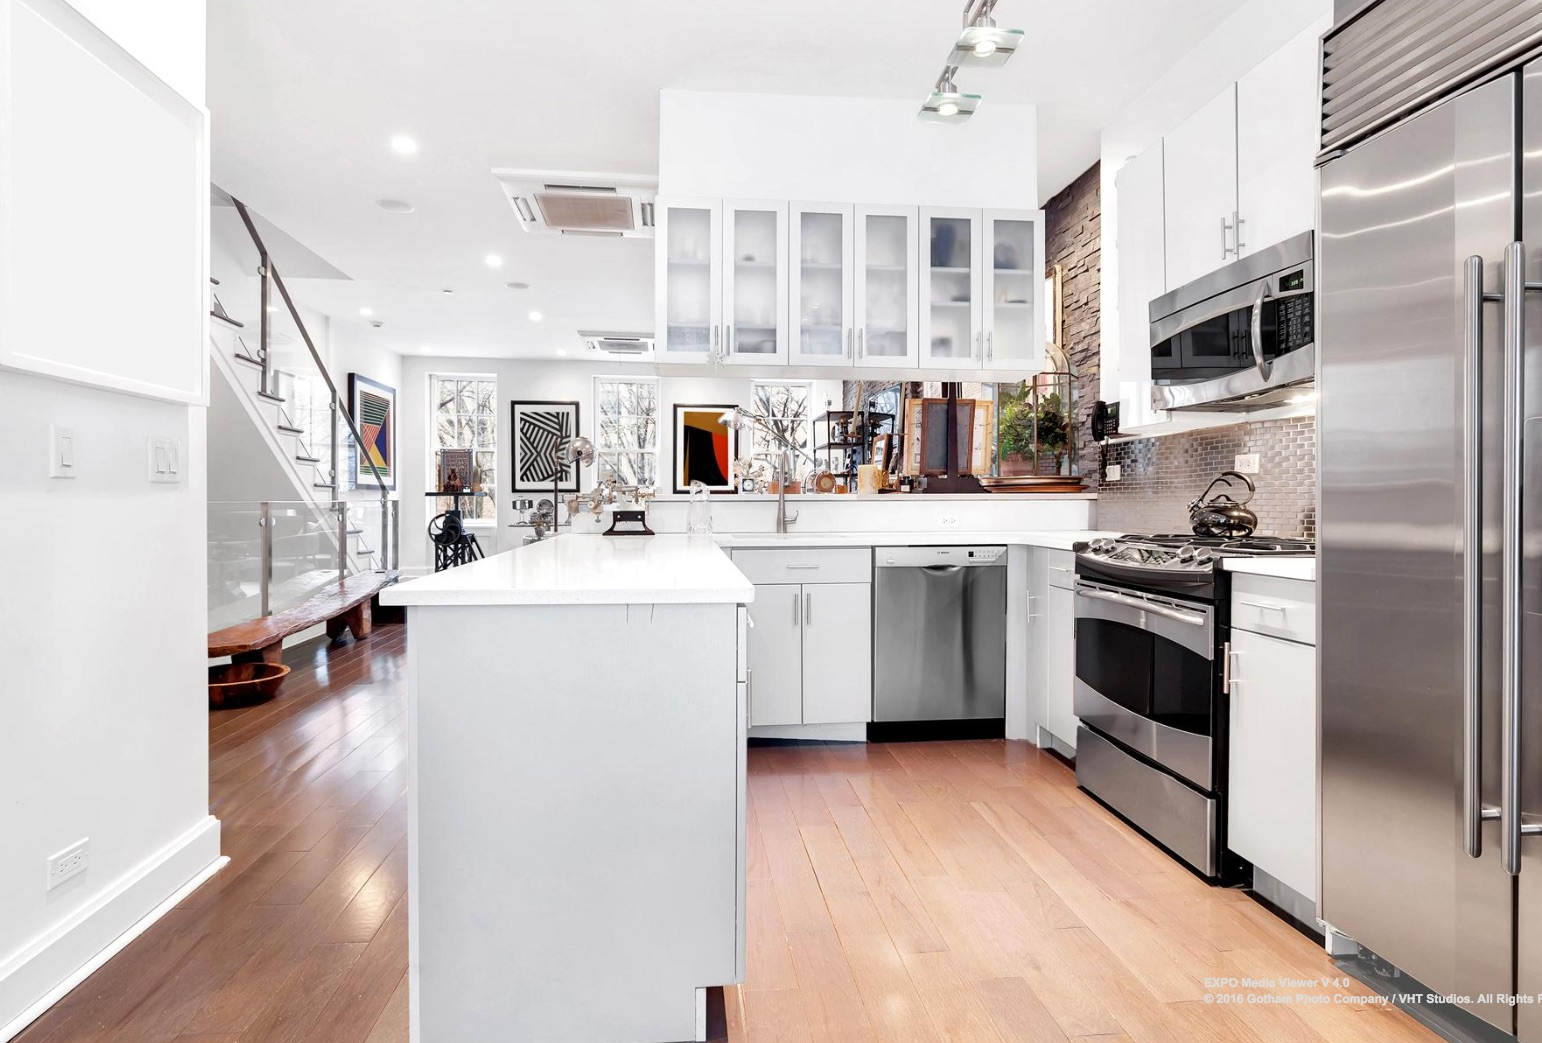 $25K a Month Is the Price of Near-Perfection in This West Village ...